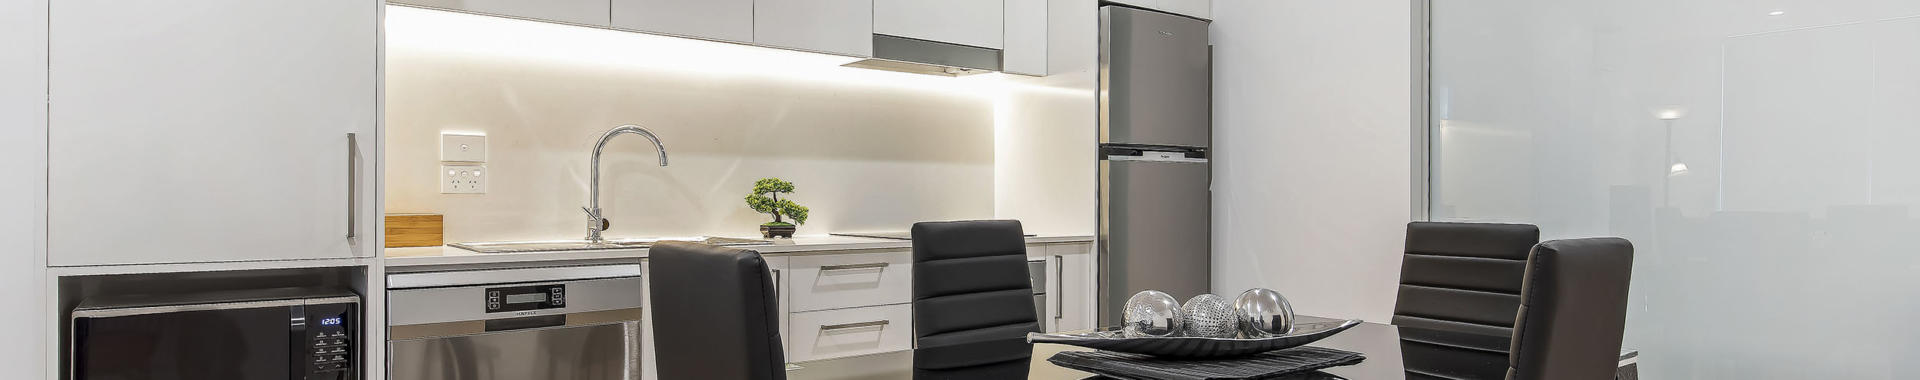 Newcastle Bellevue 1 bed corporate apartment dining